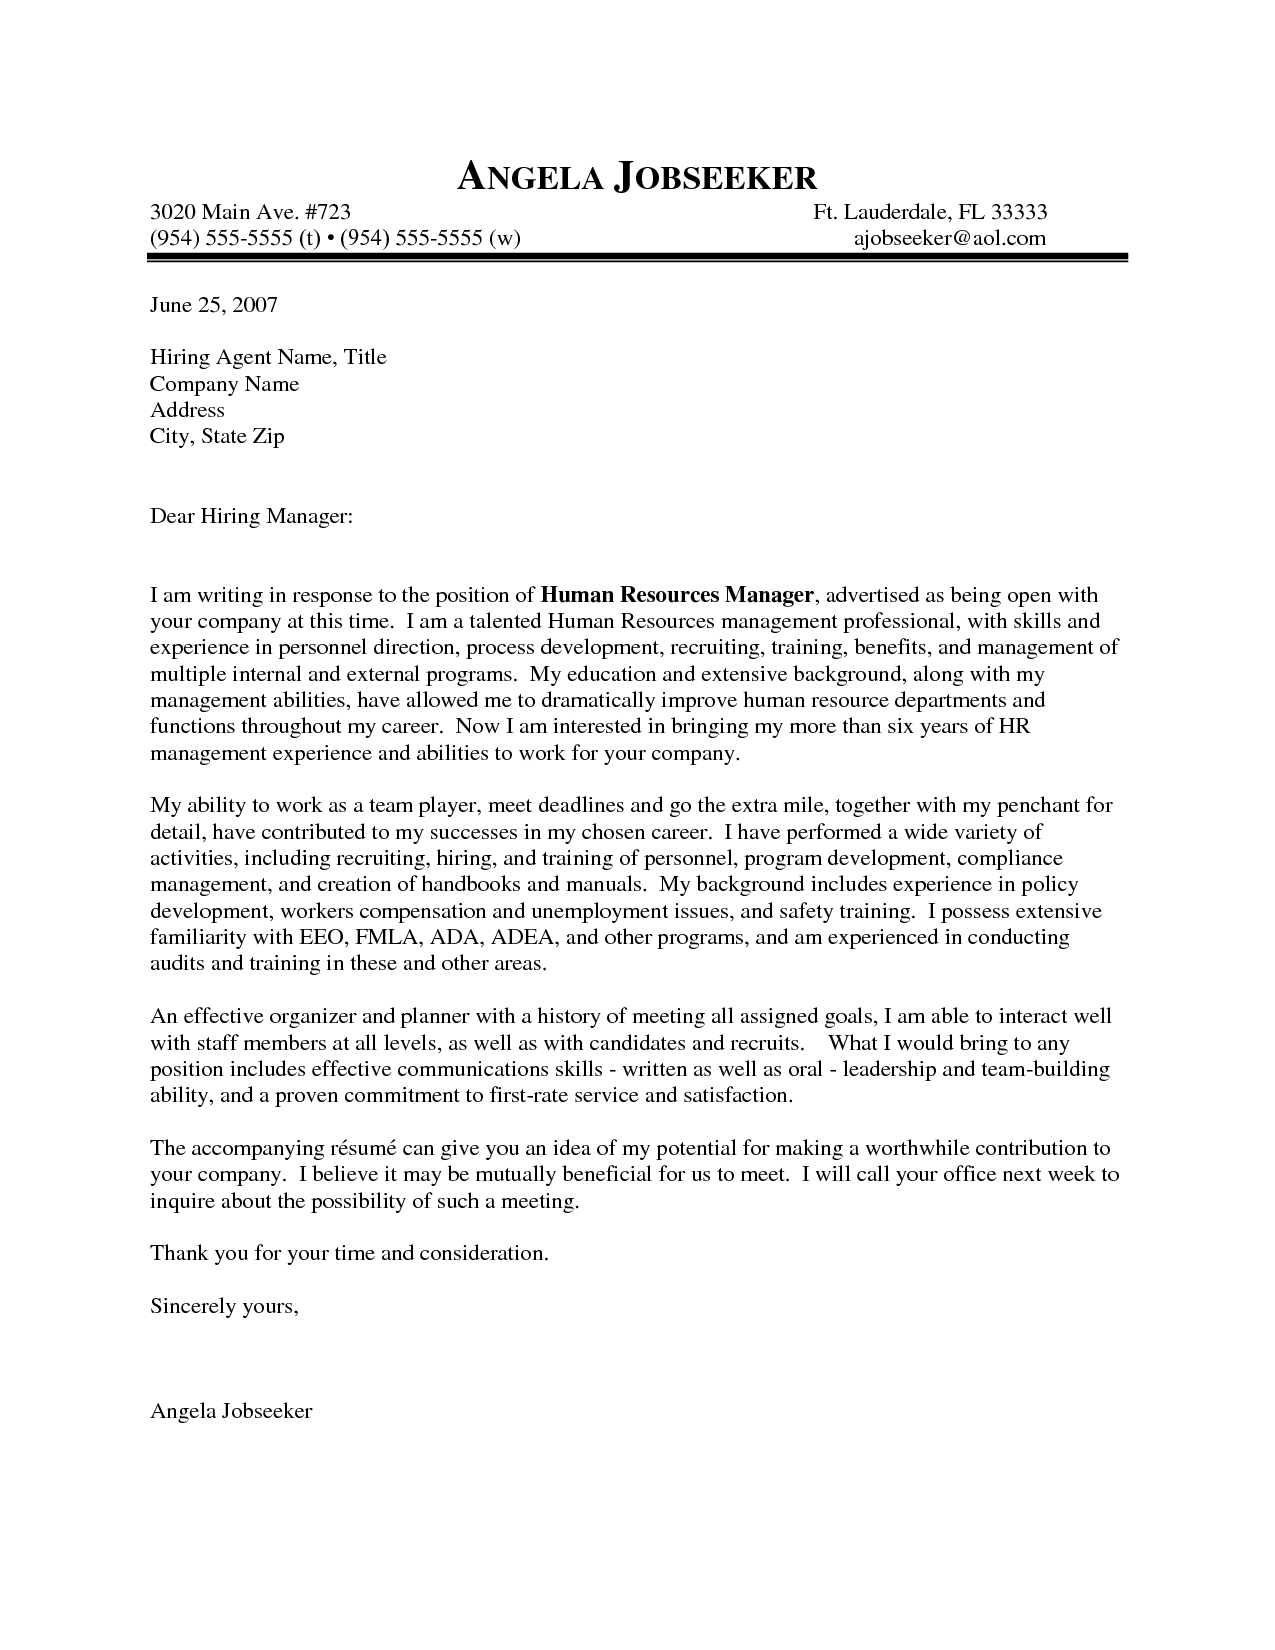 Outstanding Cover Letter Examples  HR Manager Cover Letter Example  career excellence  Cover